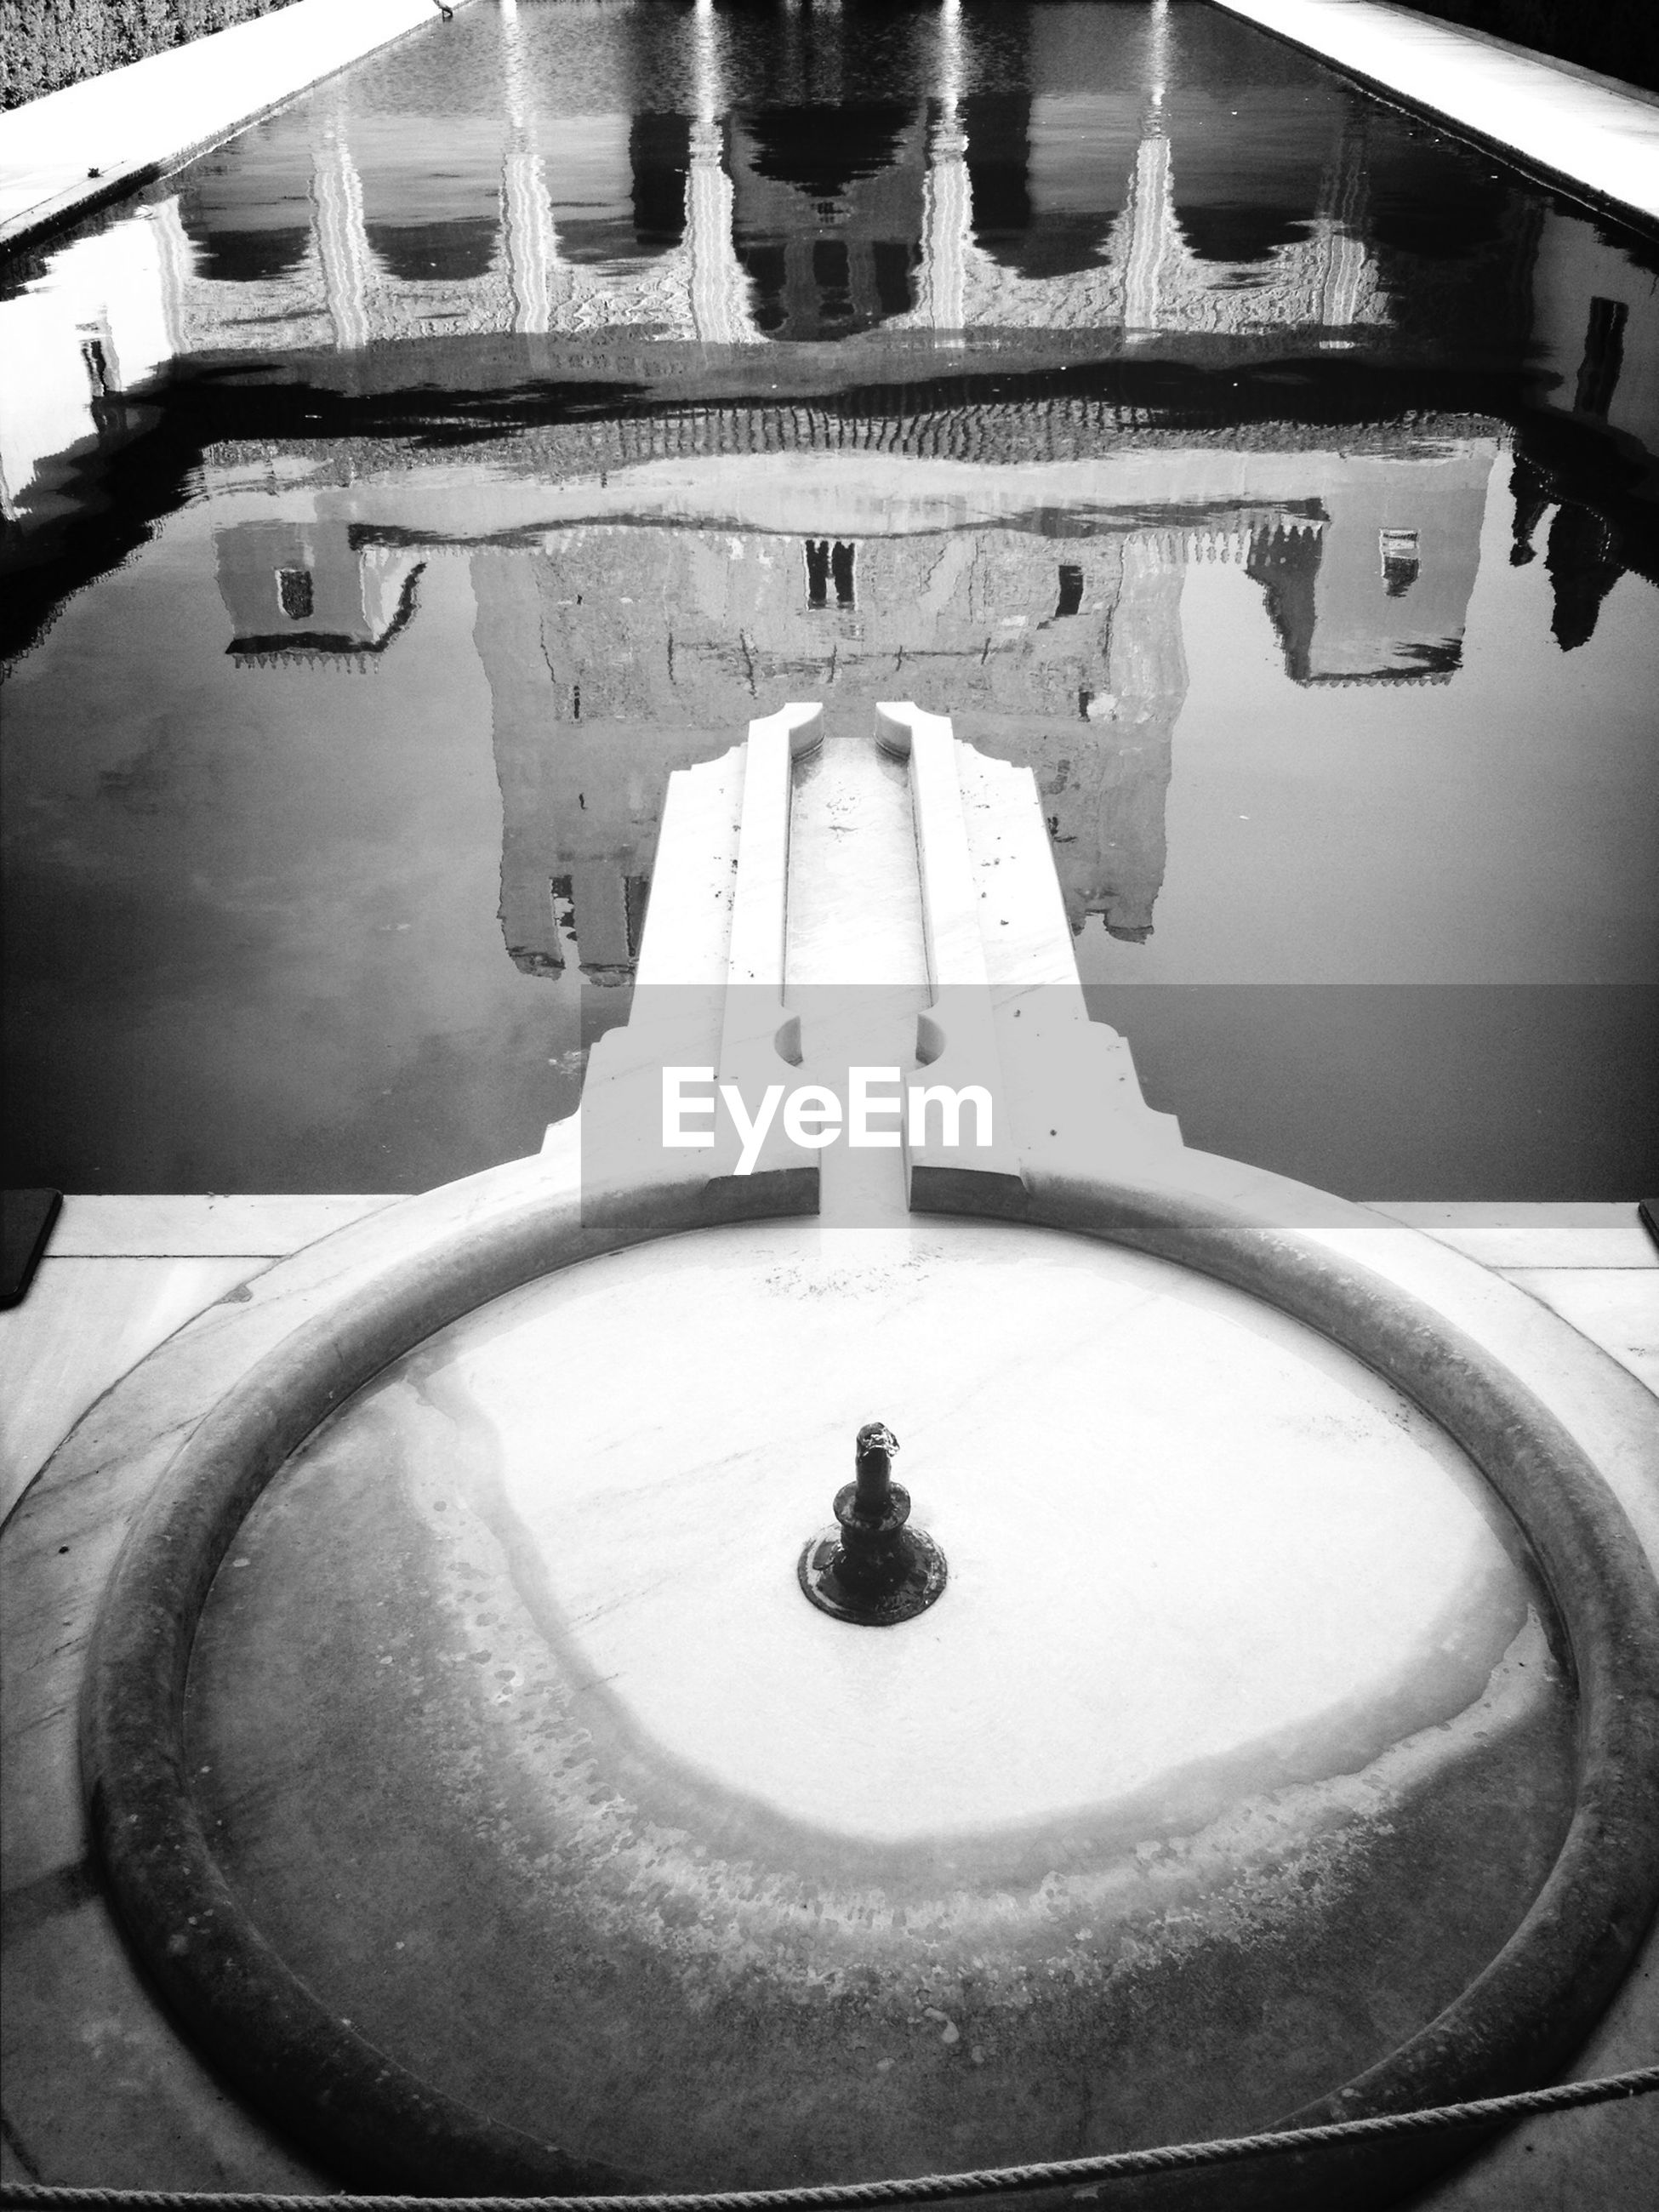 architecture, built structure, water, building exterior, high angle view, reflection, fountain, building, day, no people, history, outdoors, puddle, sculpture, old, transportation, travel destinations, travel, famous place, place of worship